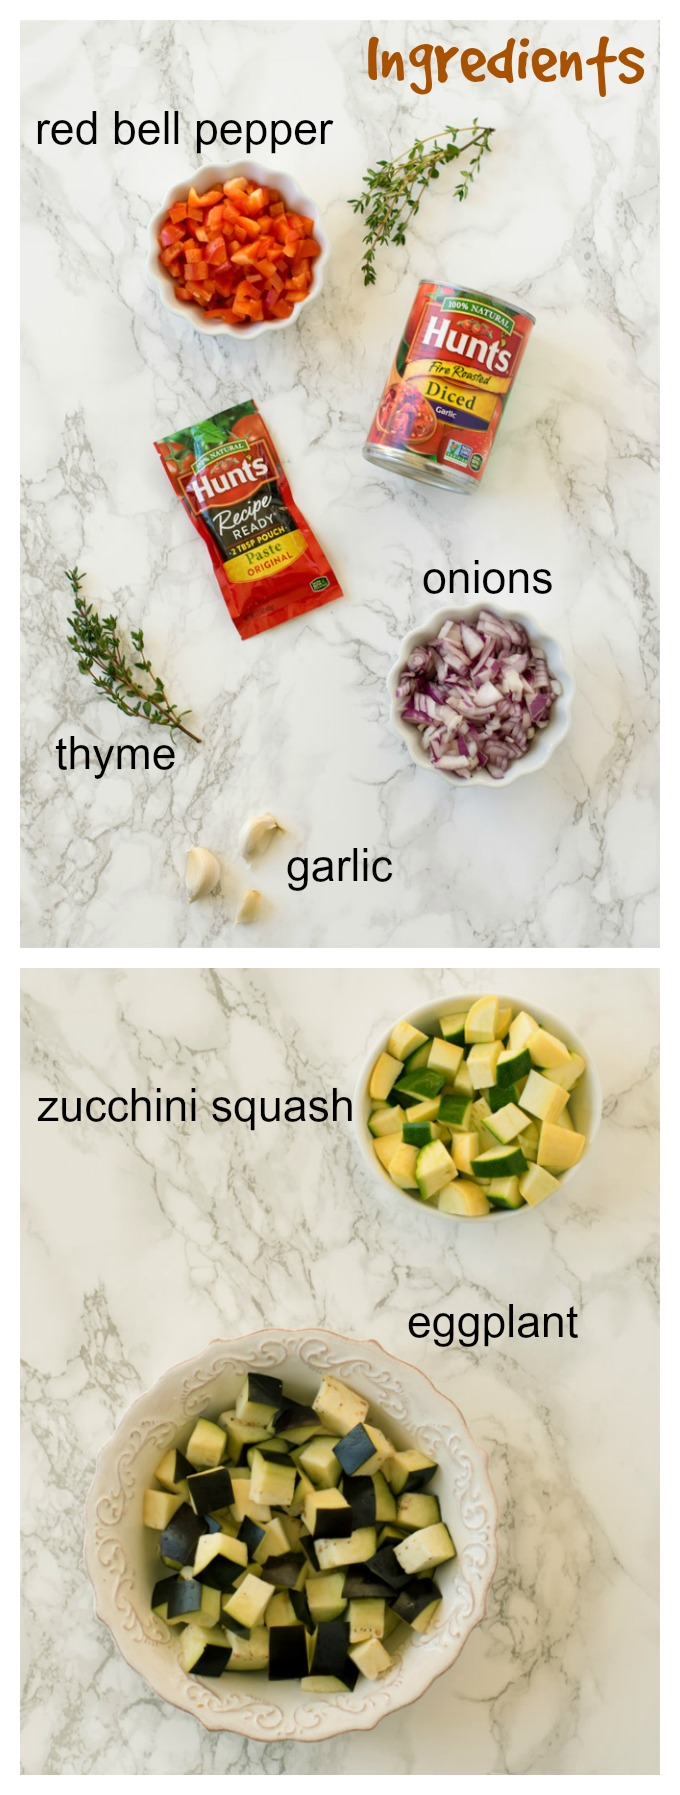 ingredients-for-sauce